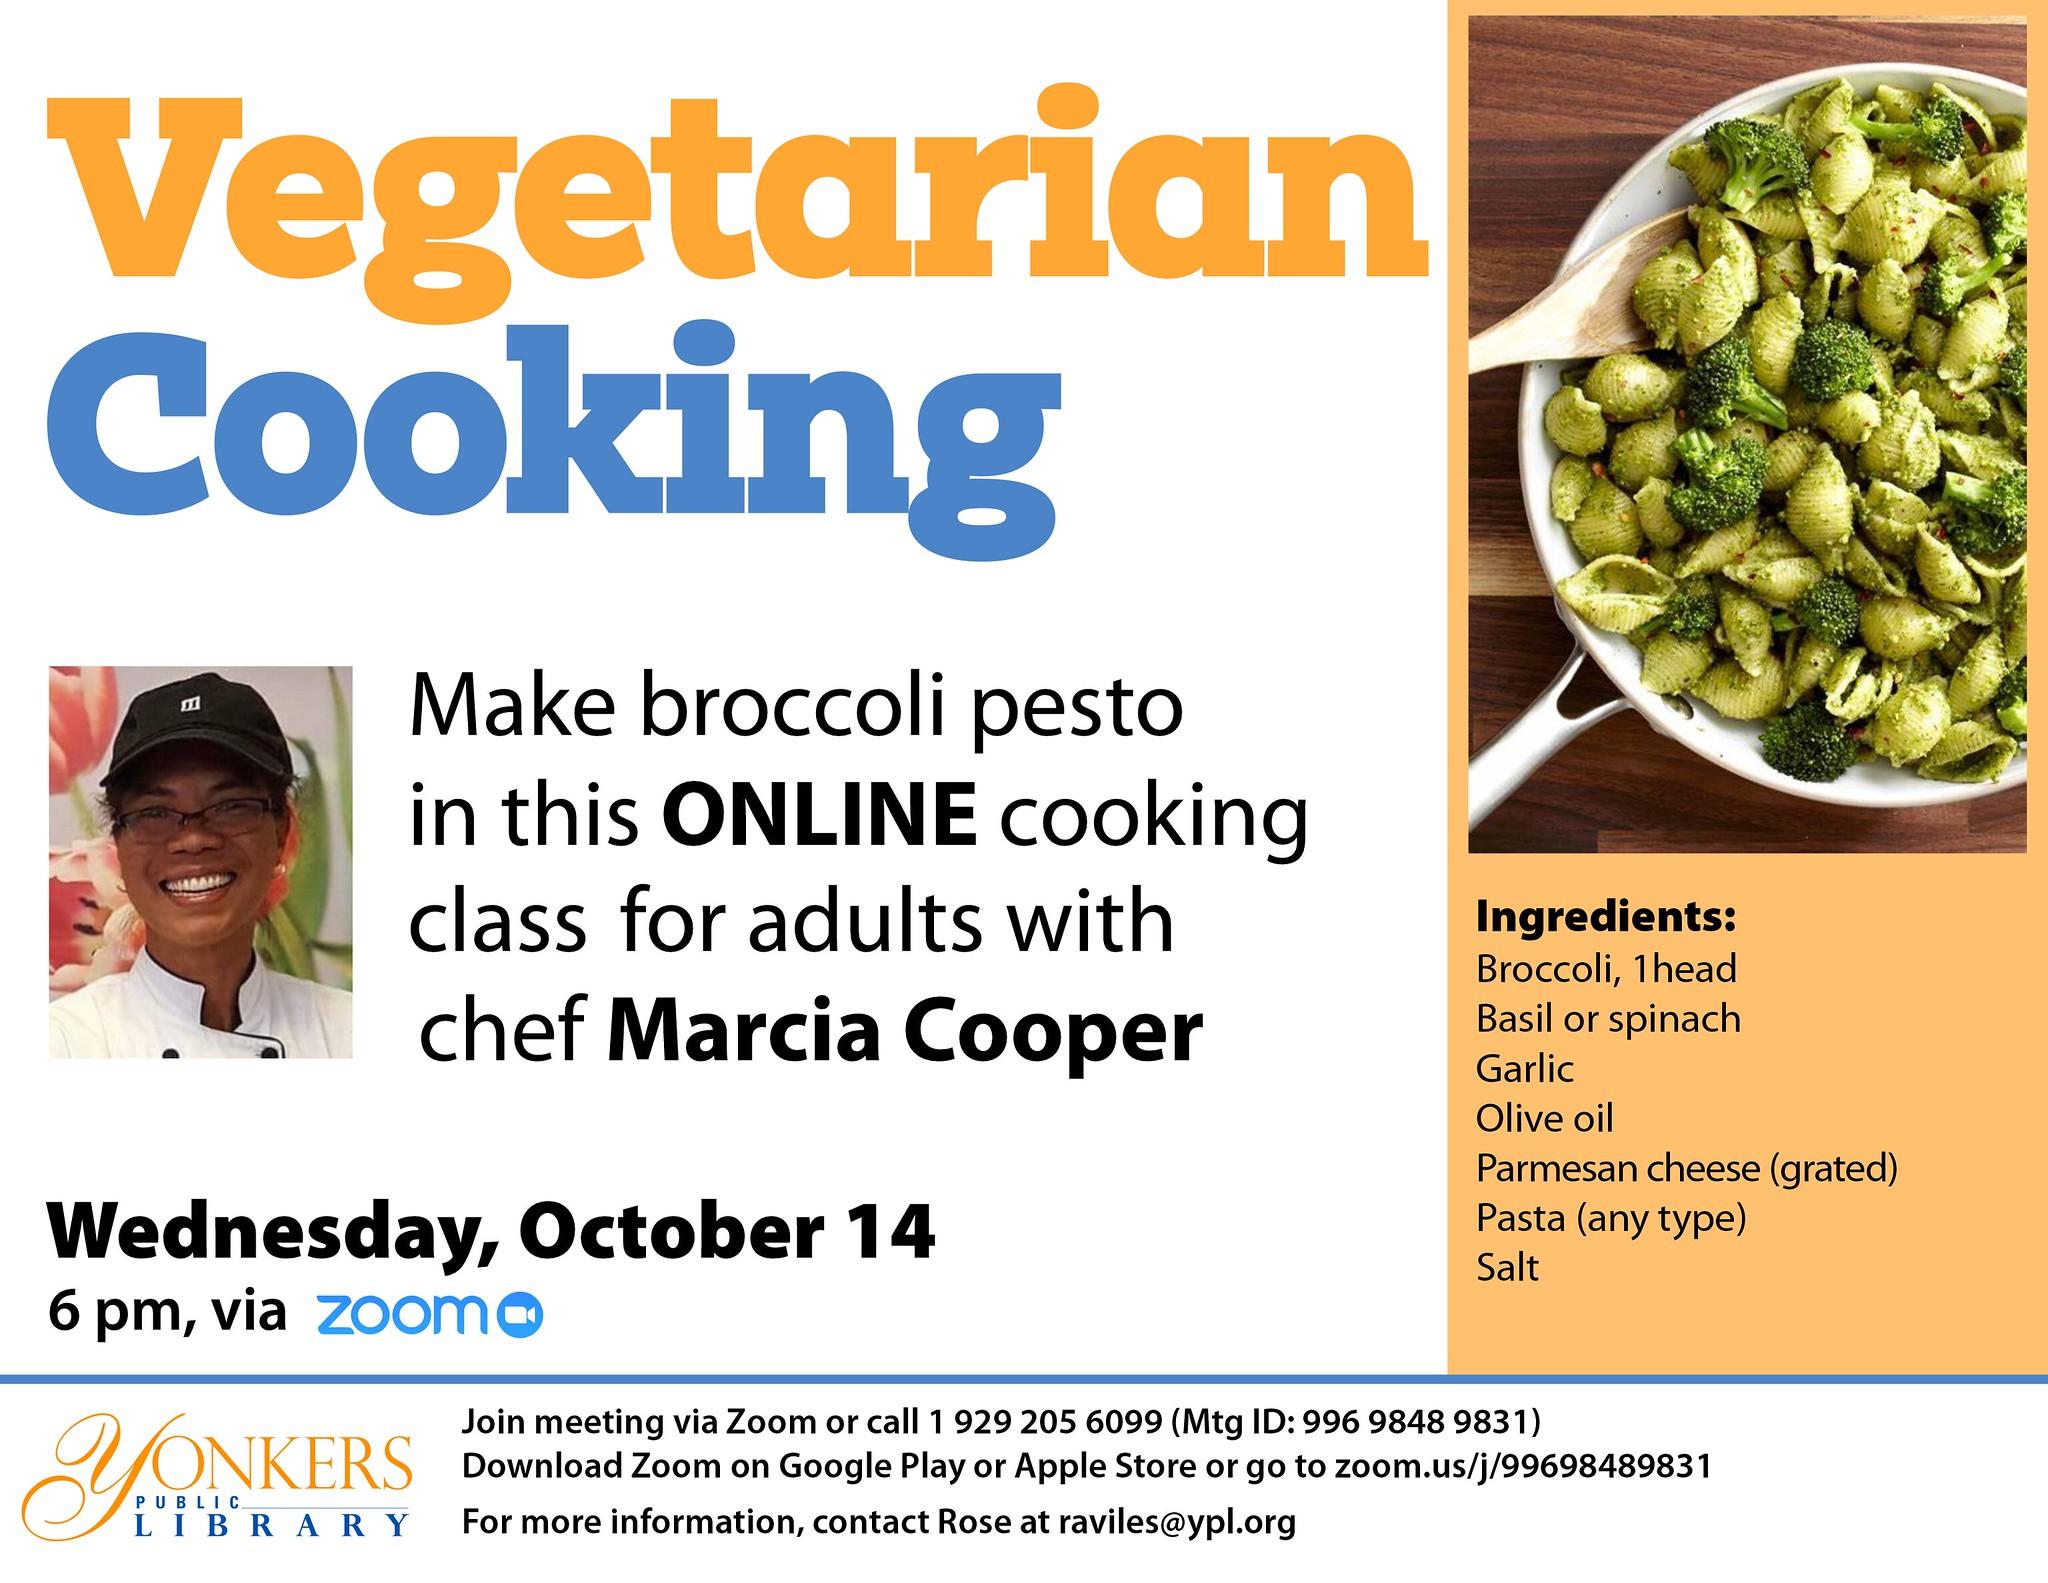 Vegetarian Cooking Class with Chef Marcia Cooper image